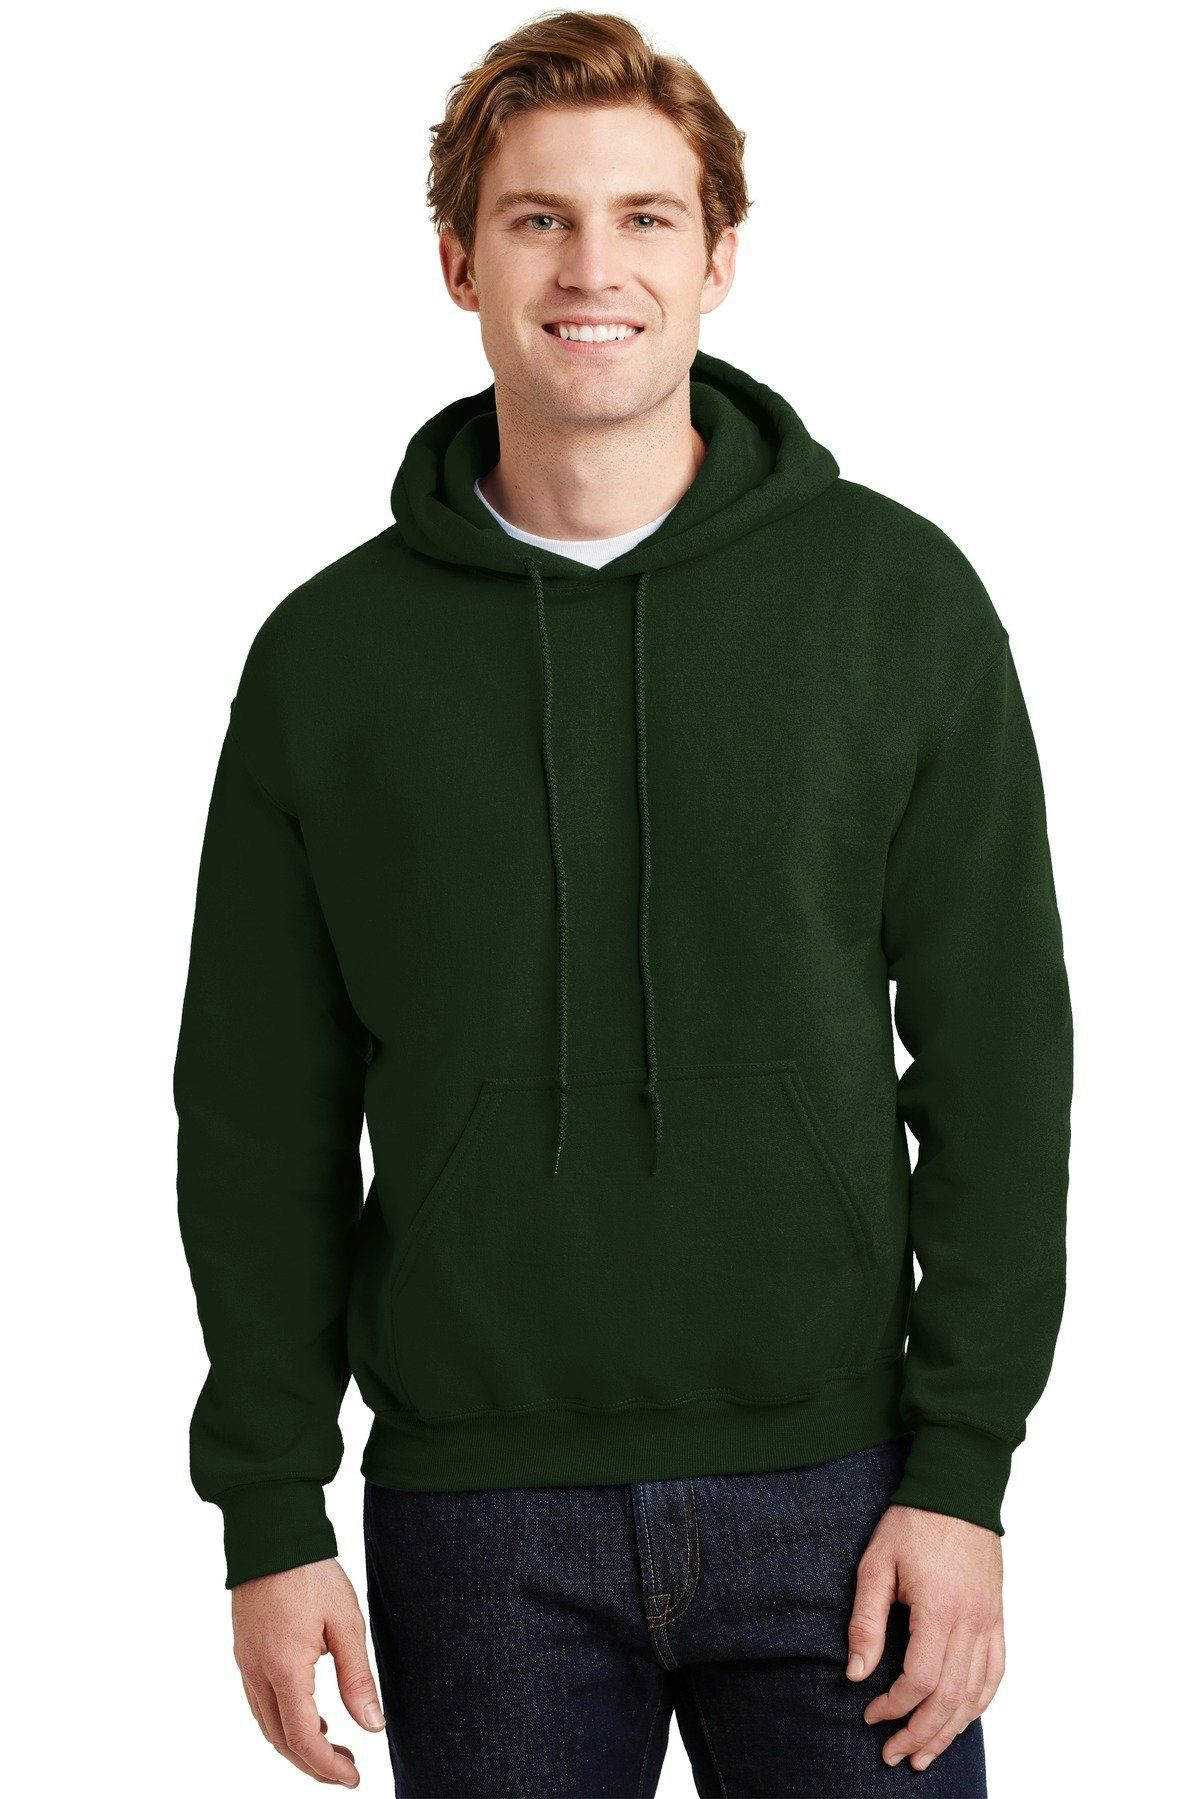 Forest Green Adult Gildan Plain Hooded Heavy Blend Pullover Sweater mens hoodie